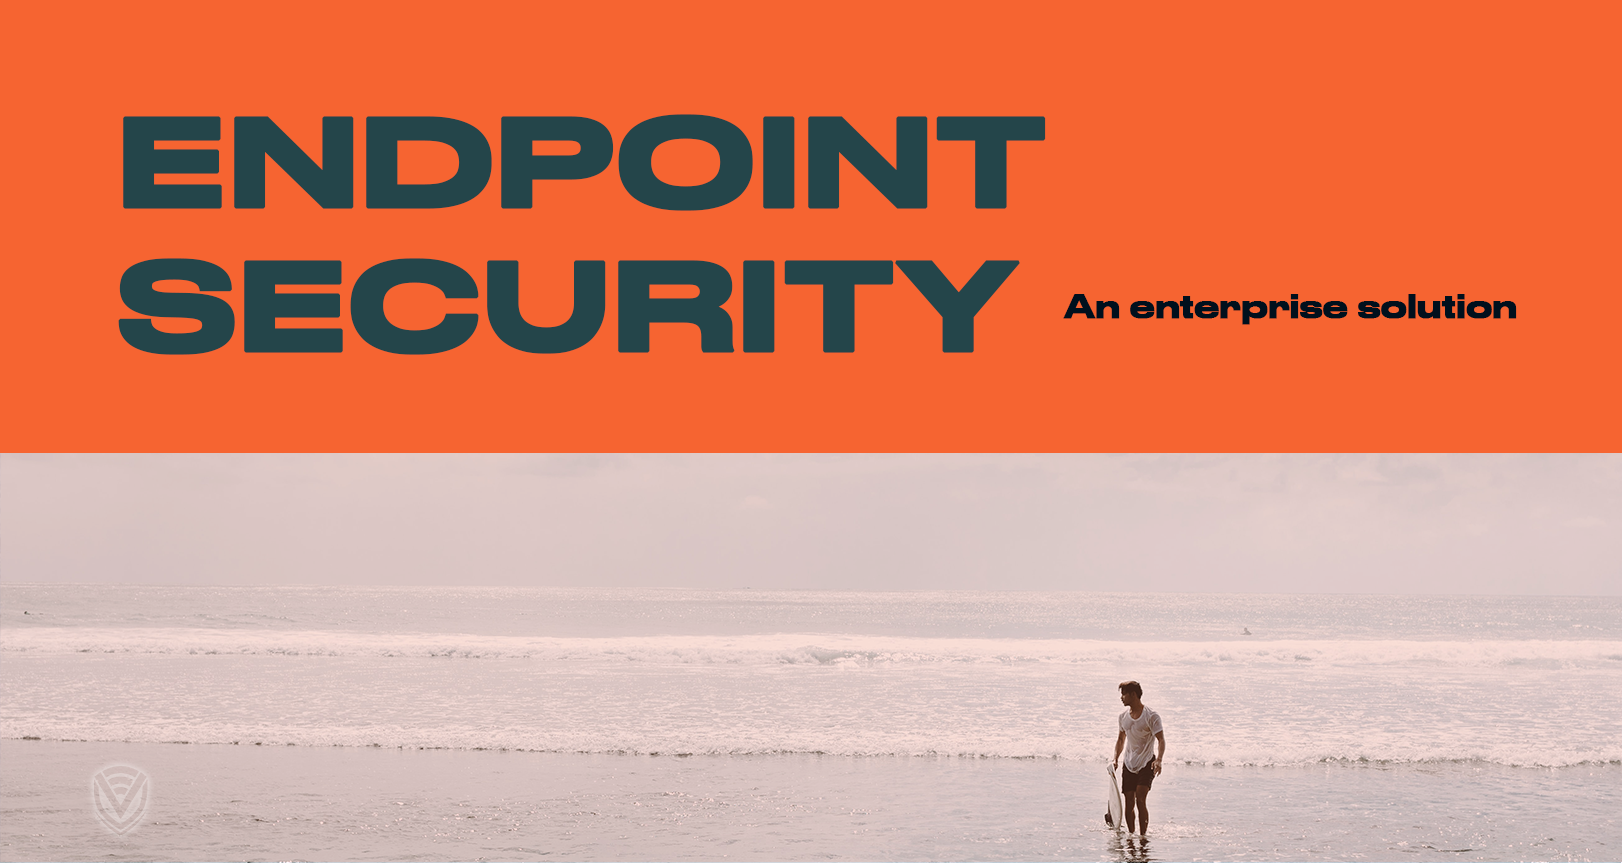 What is Endpoint Security?